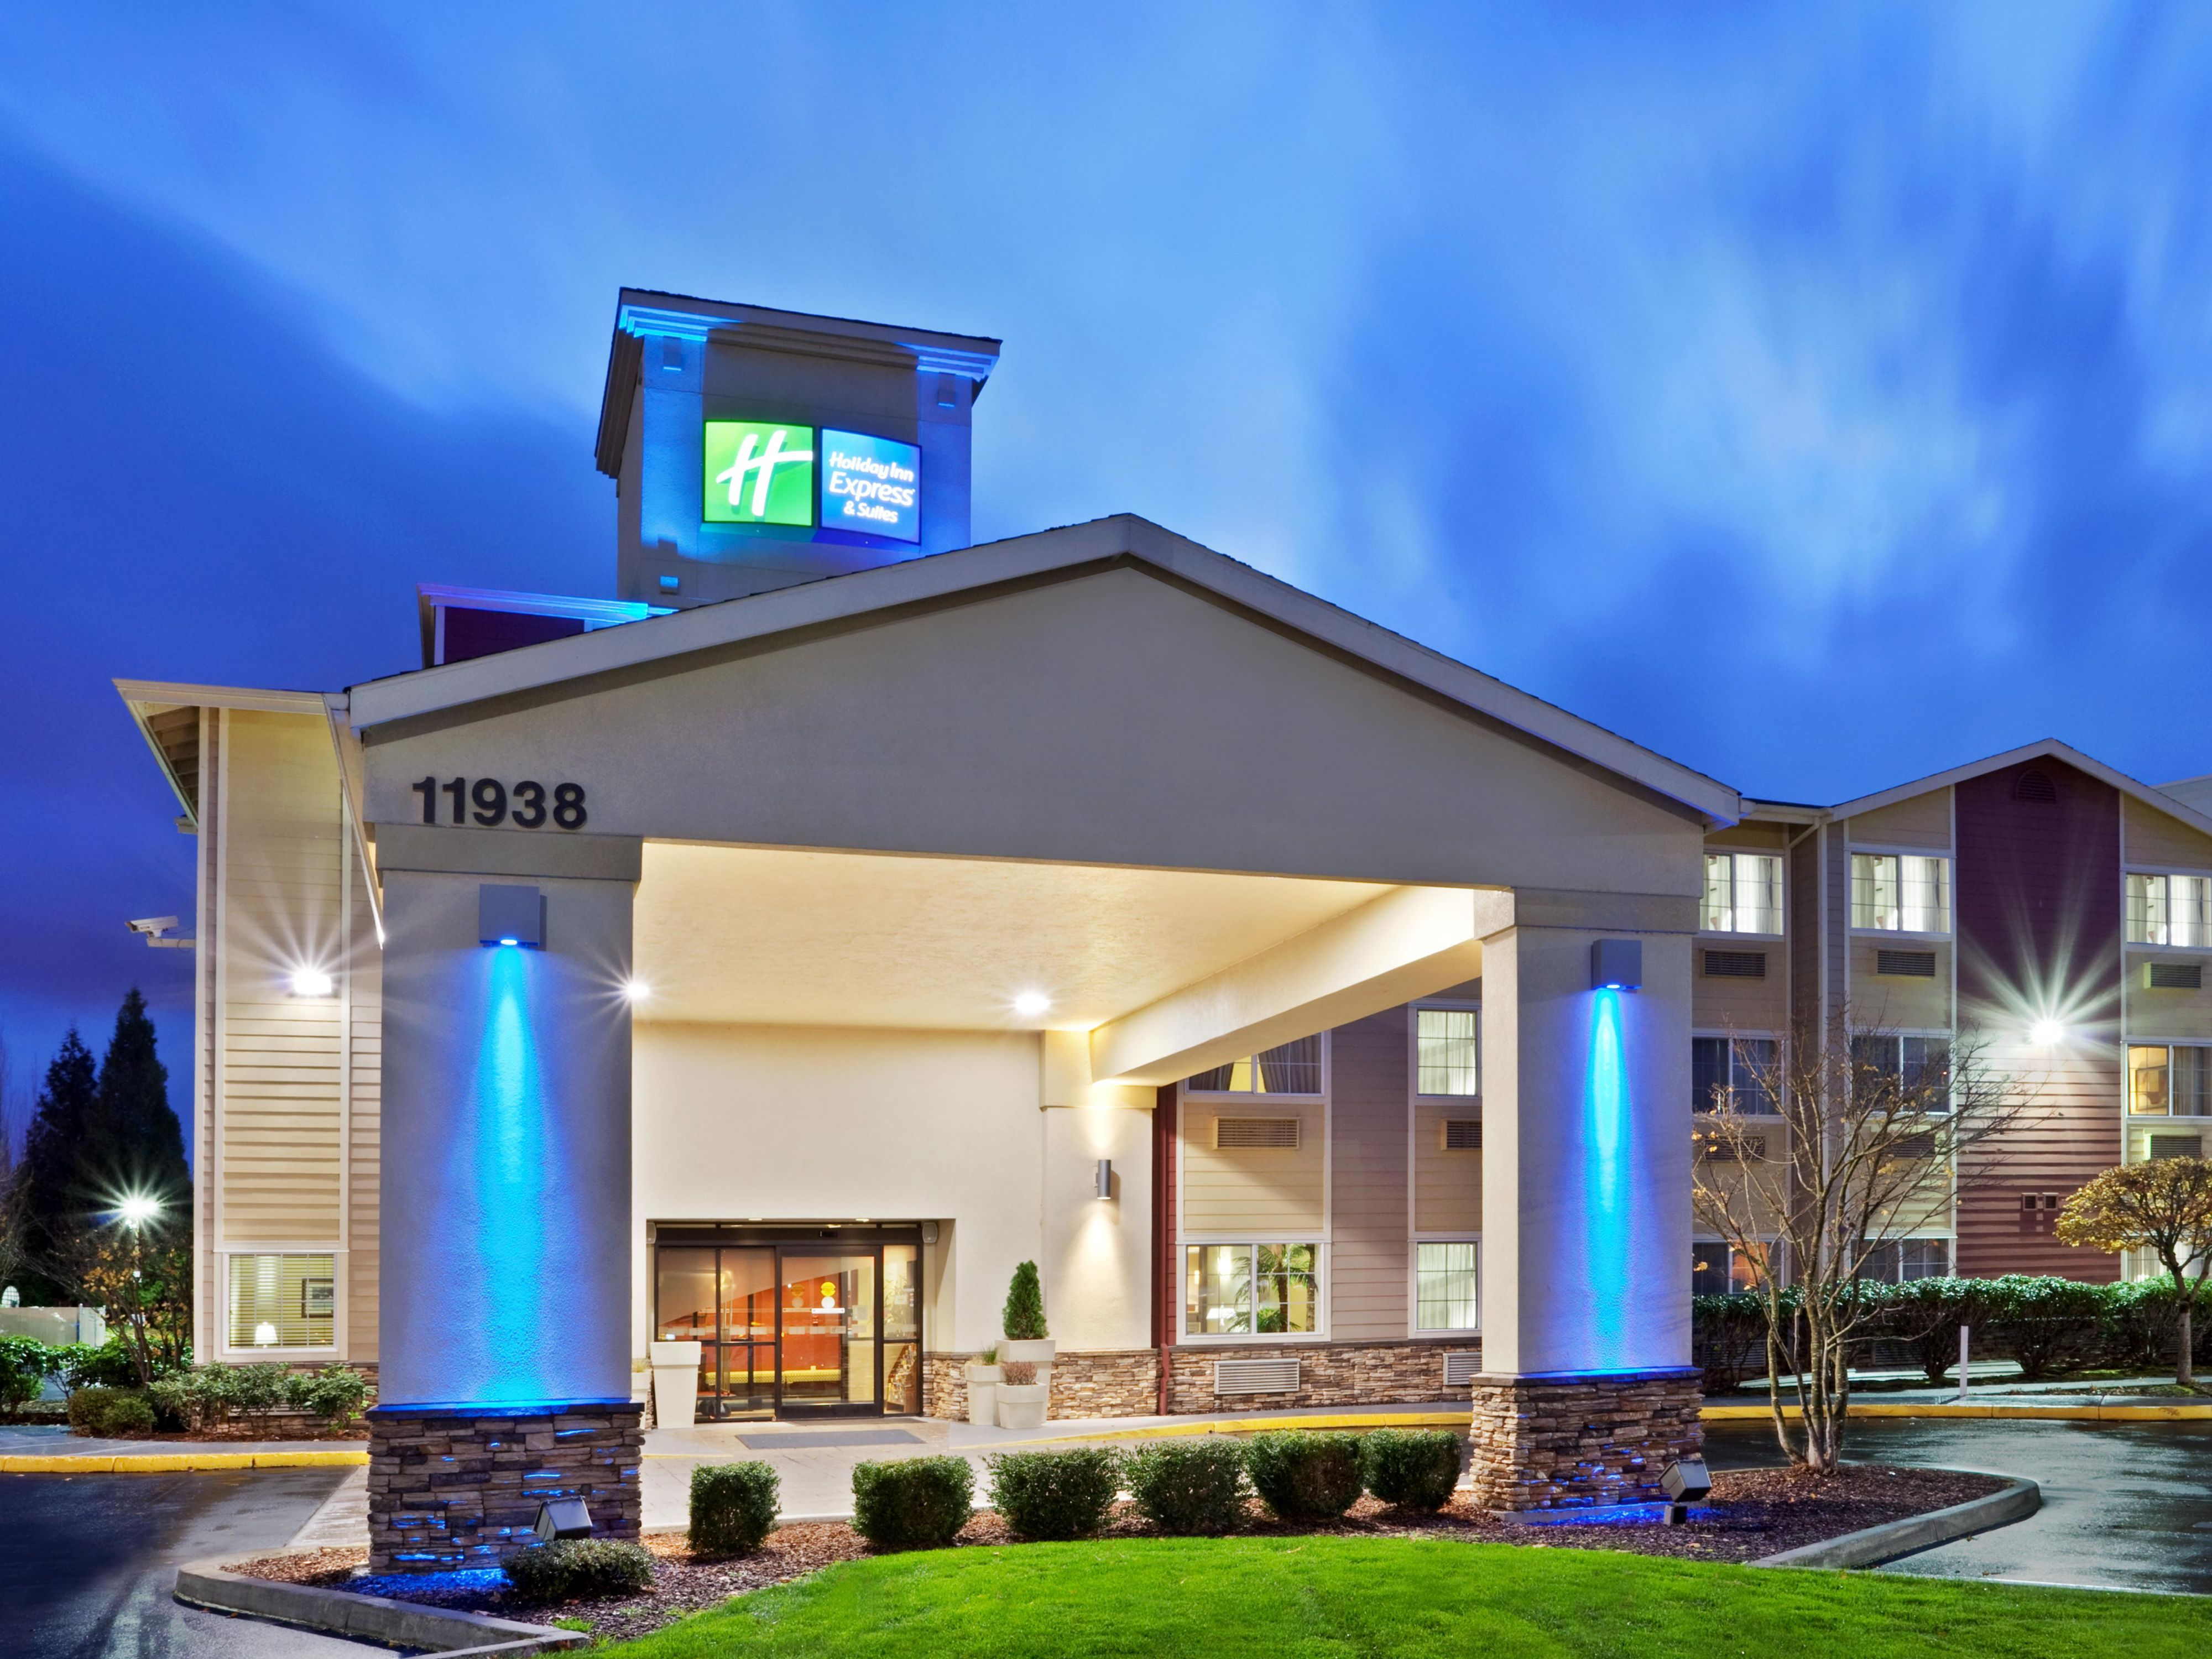 Welcome to the newly Relaunched Holiday Inn Express